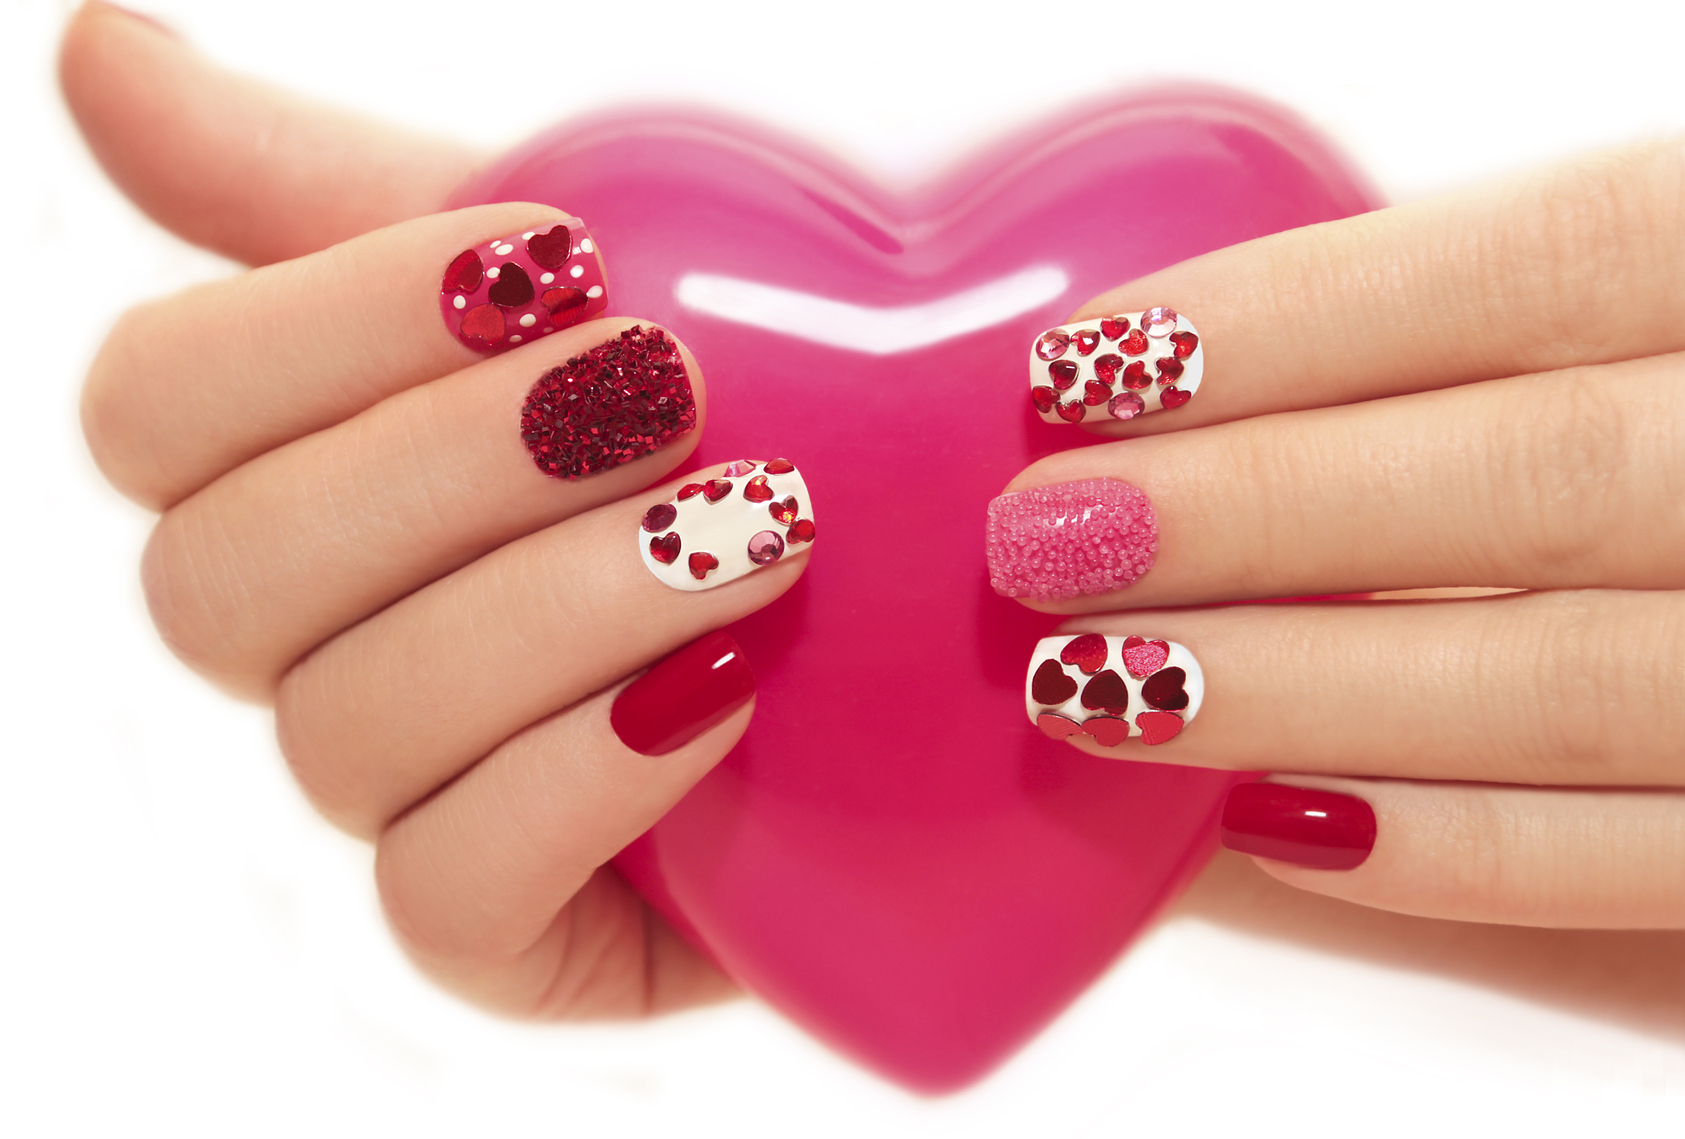 Manicure with hearts